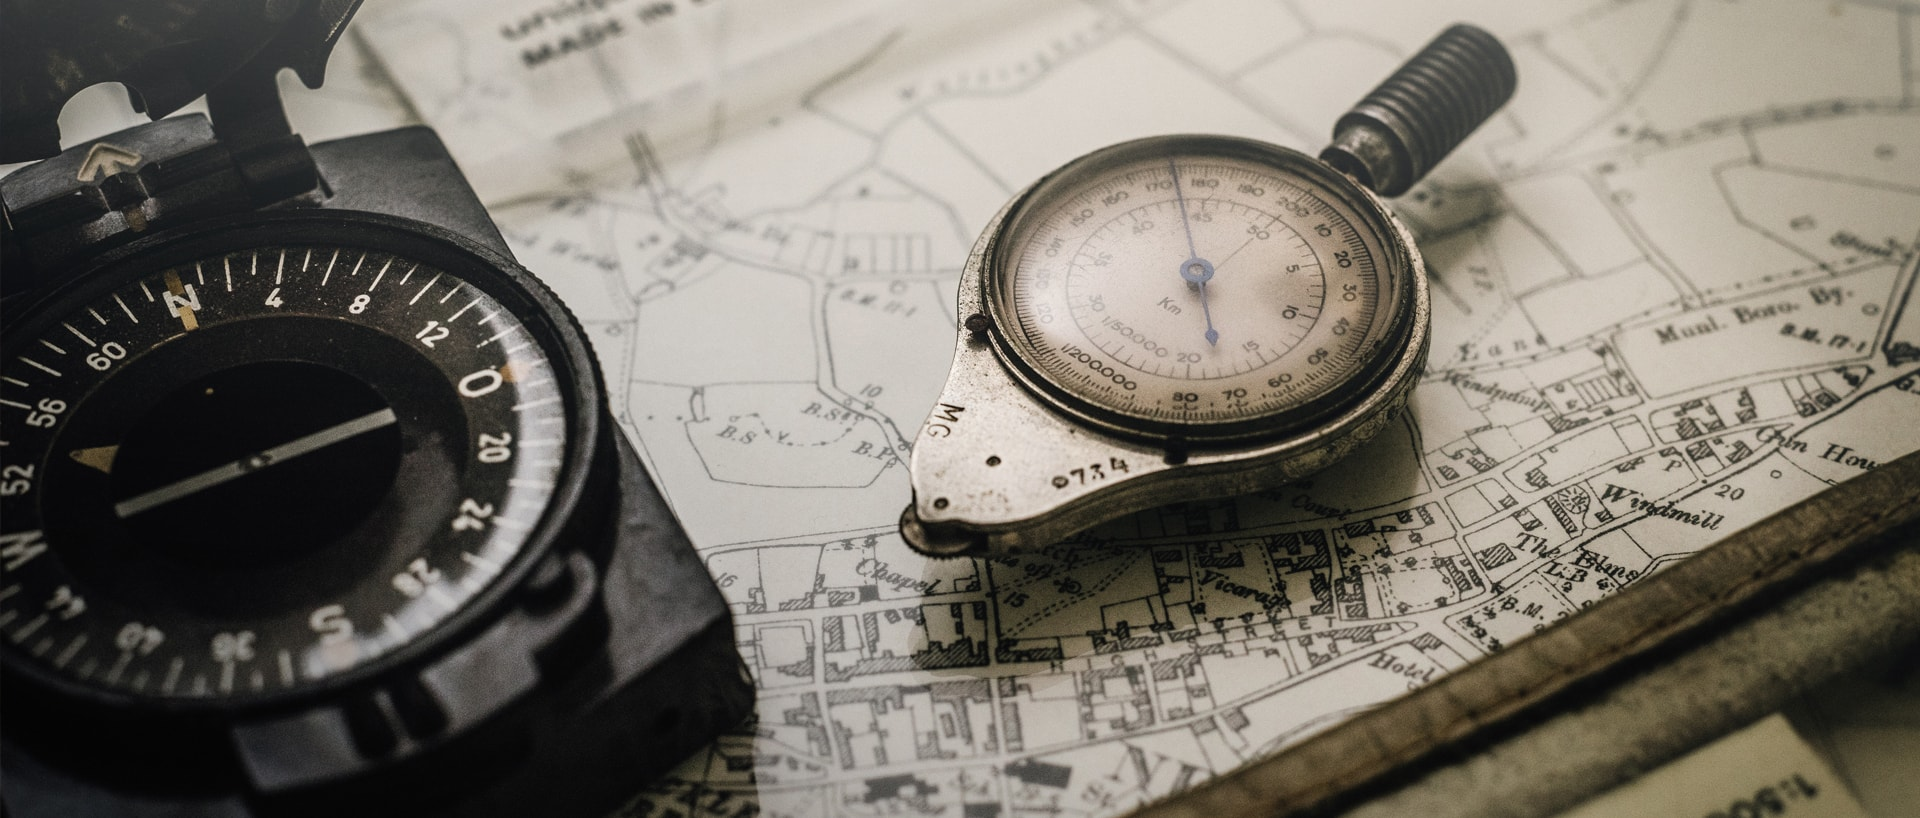 Compasses on a pile of maps and rulers